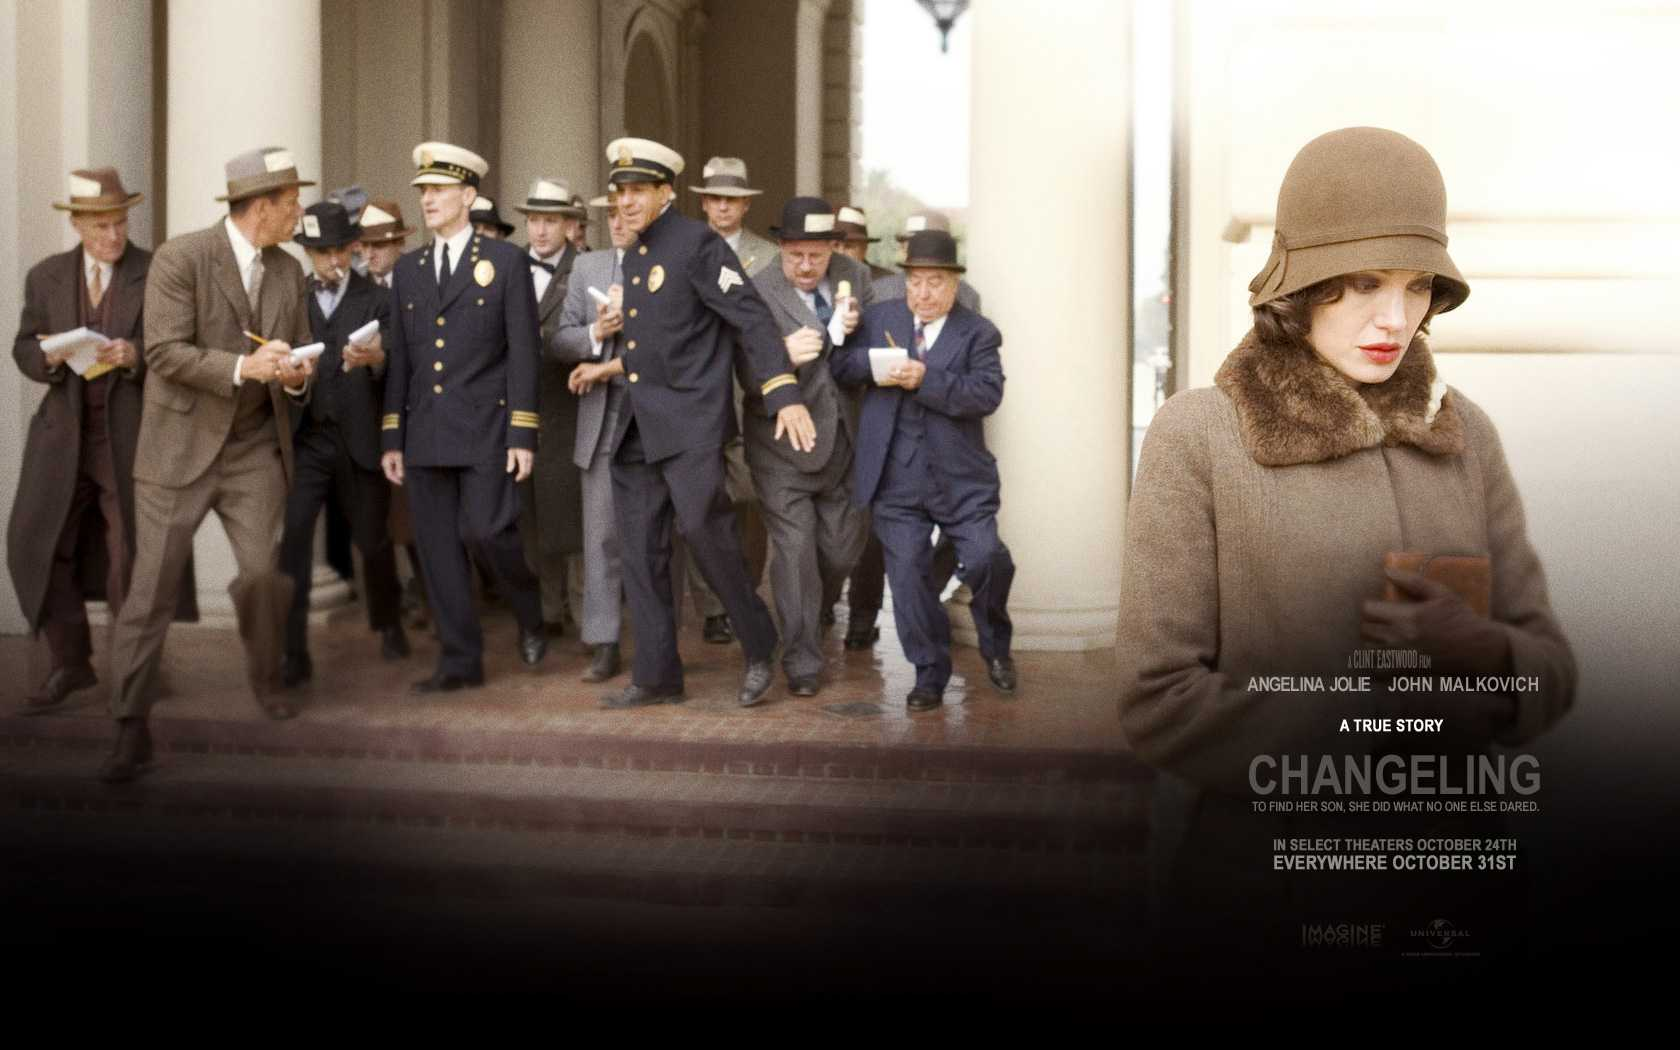 Changeling (2008 film) - Dramastyle |The Changeling 2008